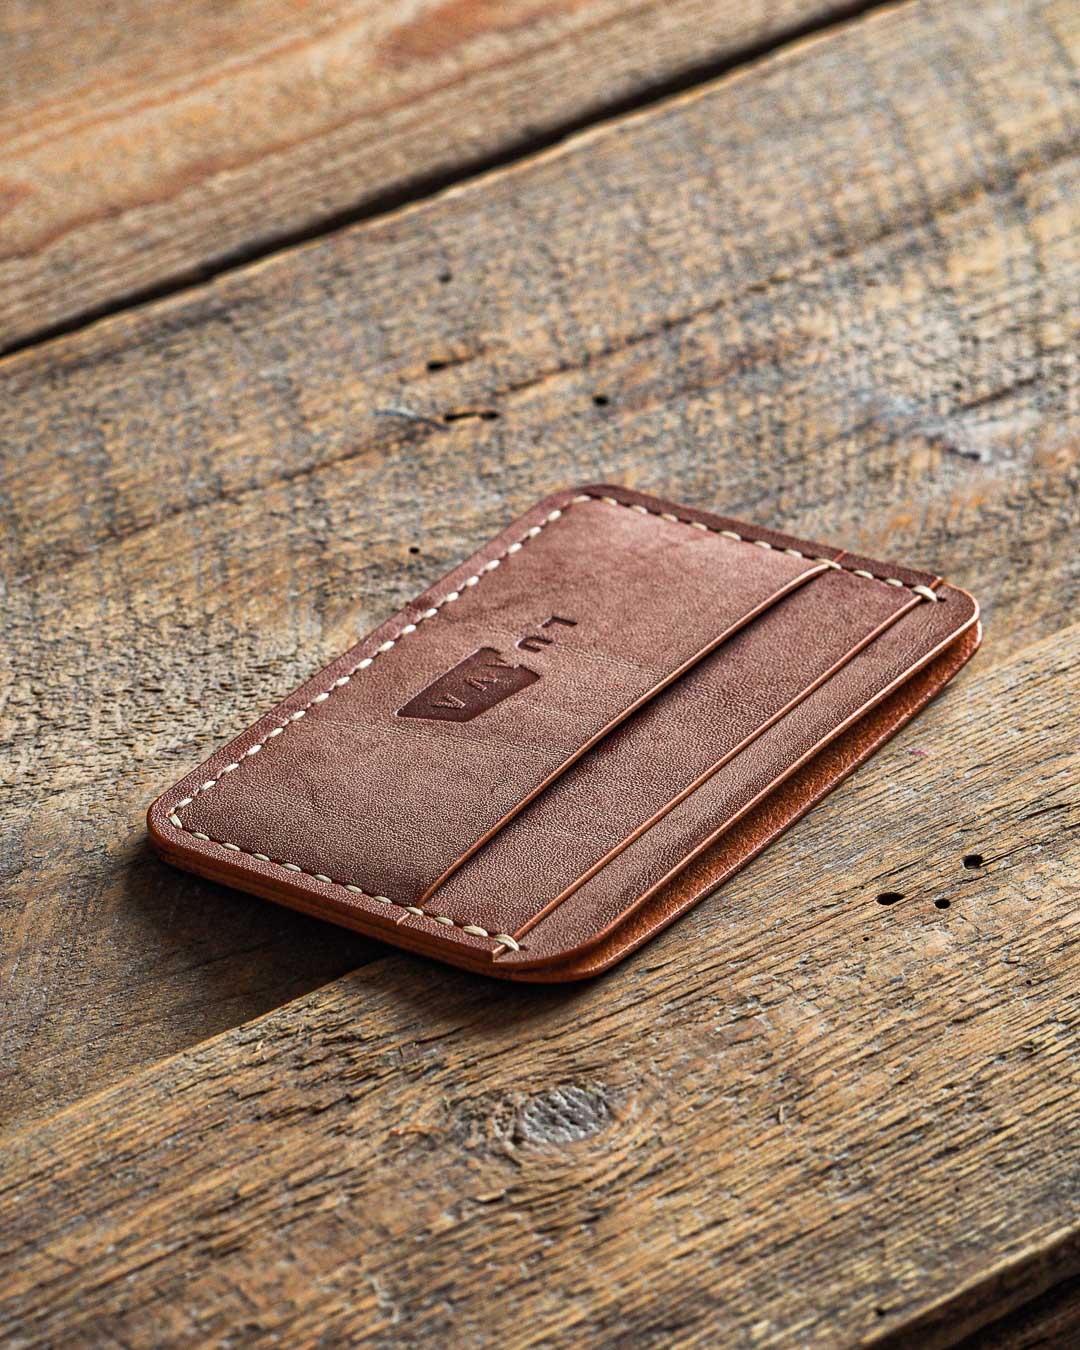 Luava handmade leather wallet handcrafted card holder cardholder made in finland proper ghost whiskey angle